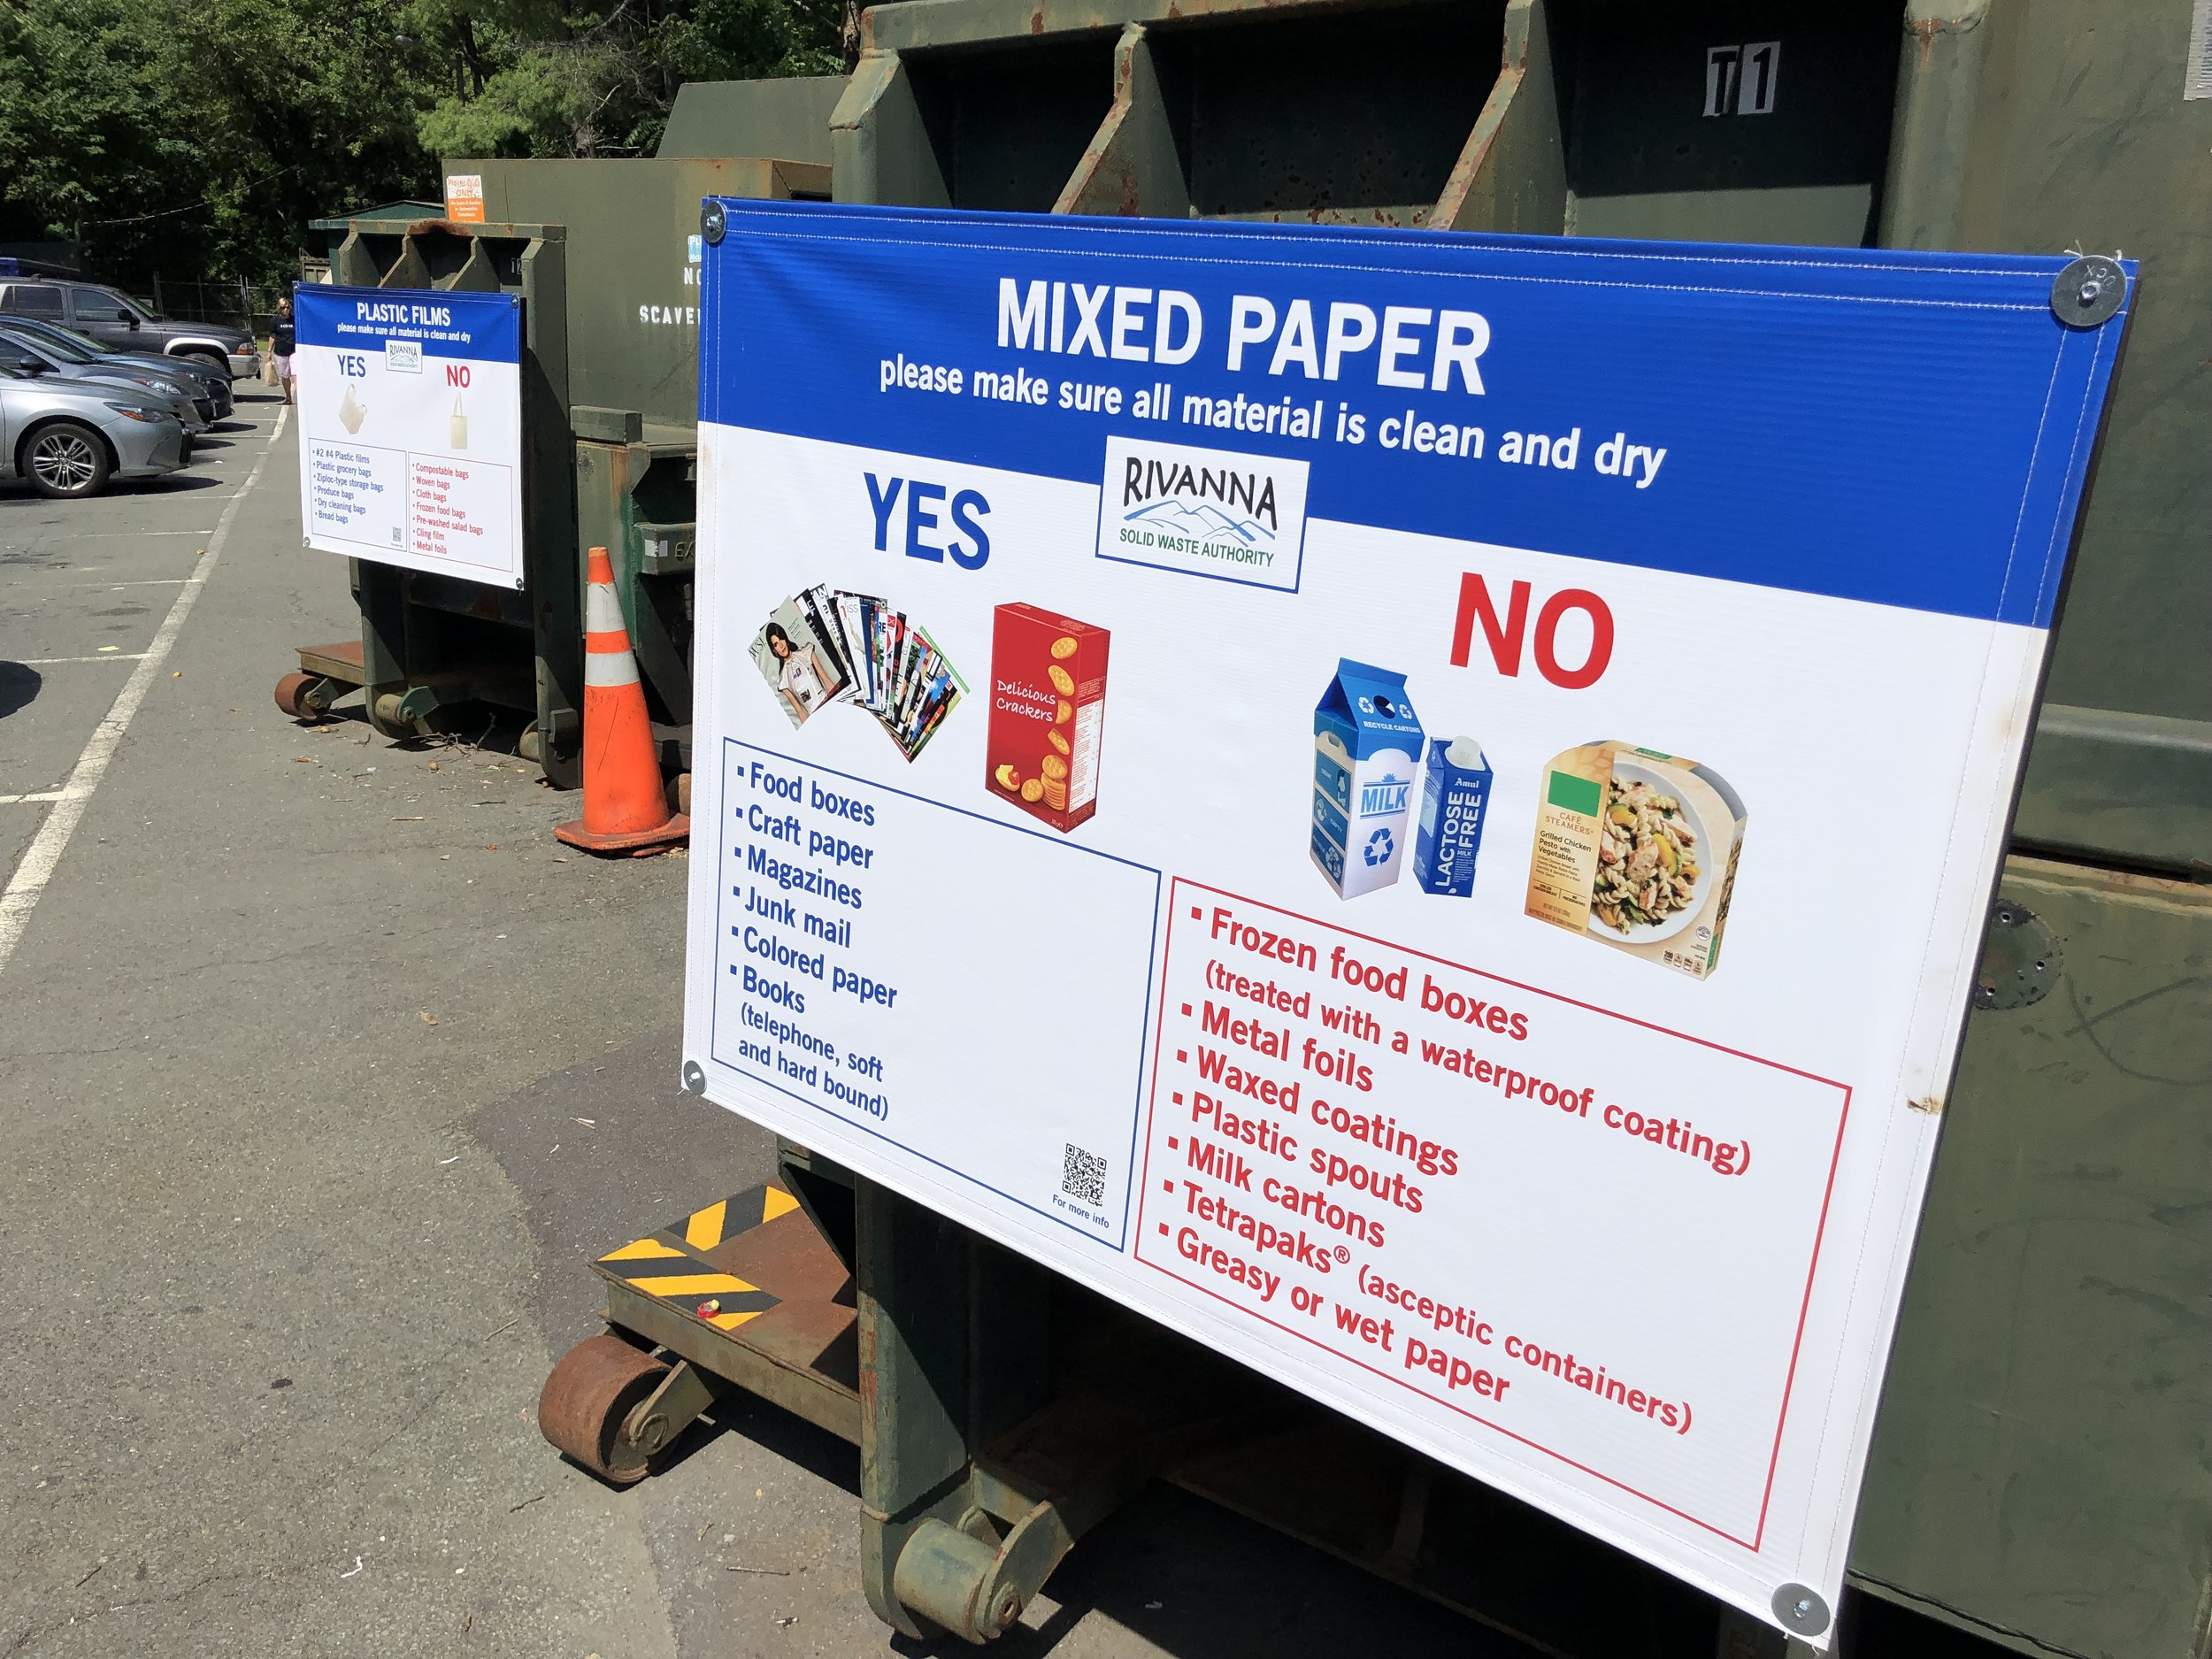 New signage to help keep Mixed Paper Bin clean!